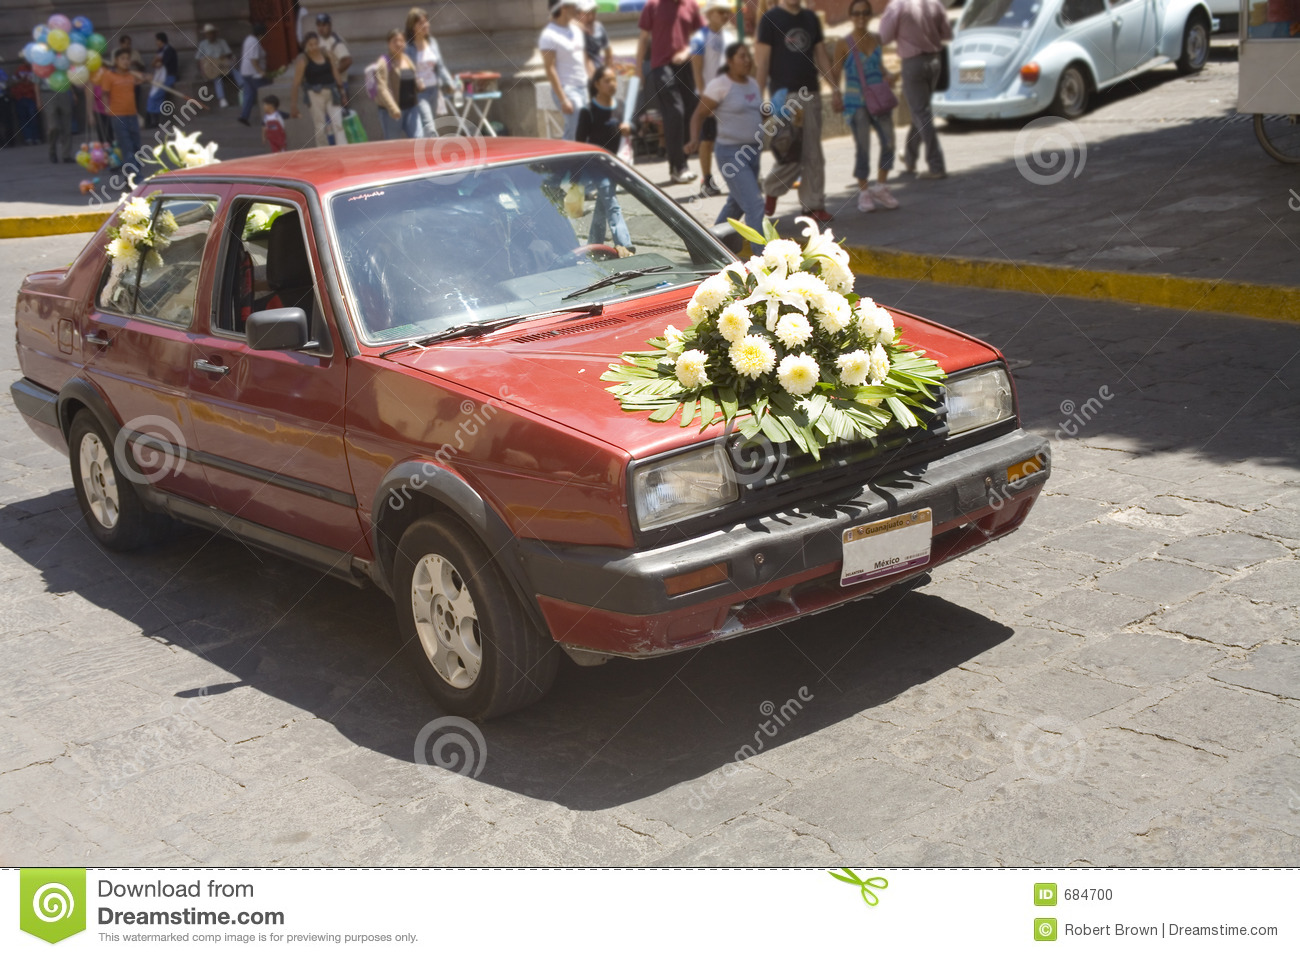 Flowers on old wedding car stock photo. Image of hood, street - 684700